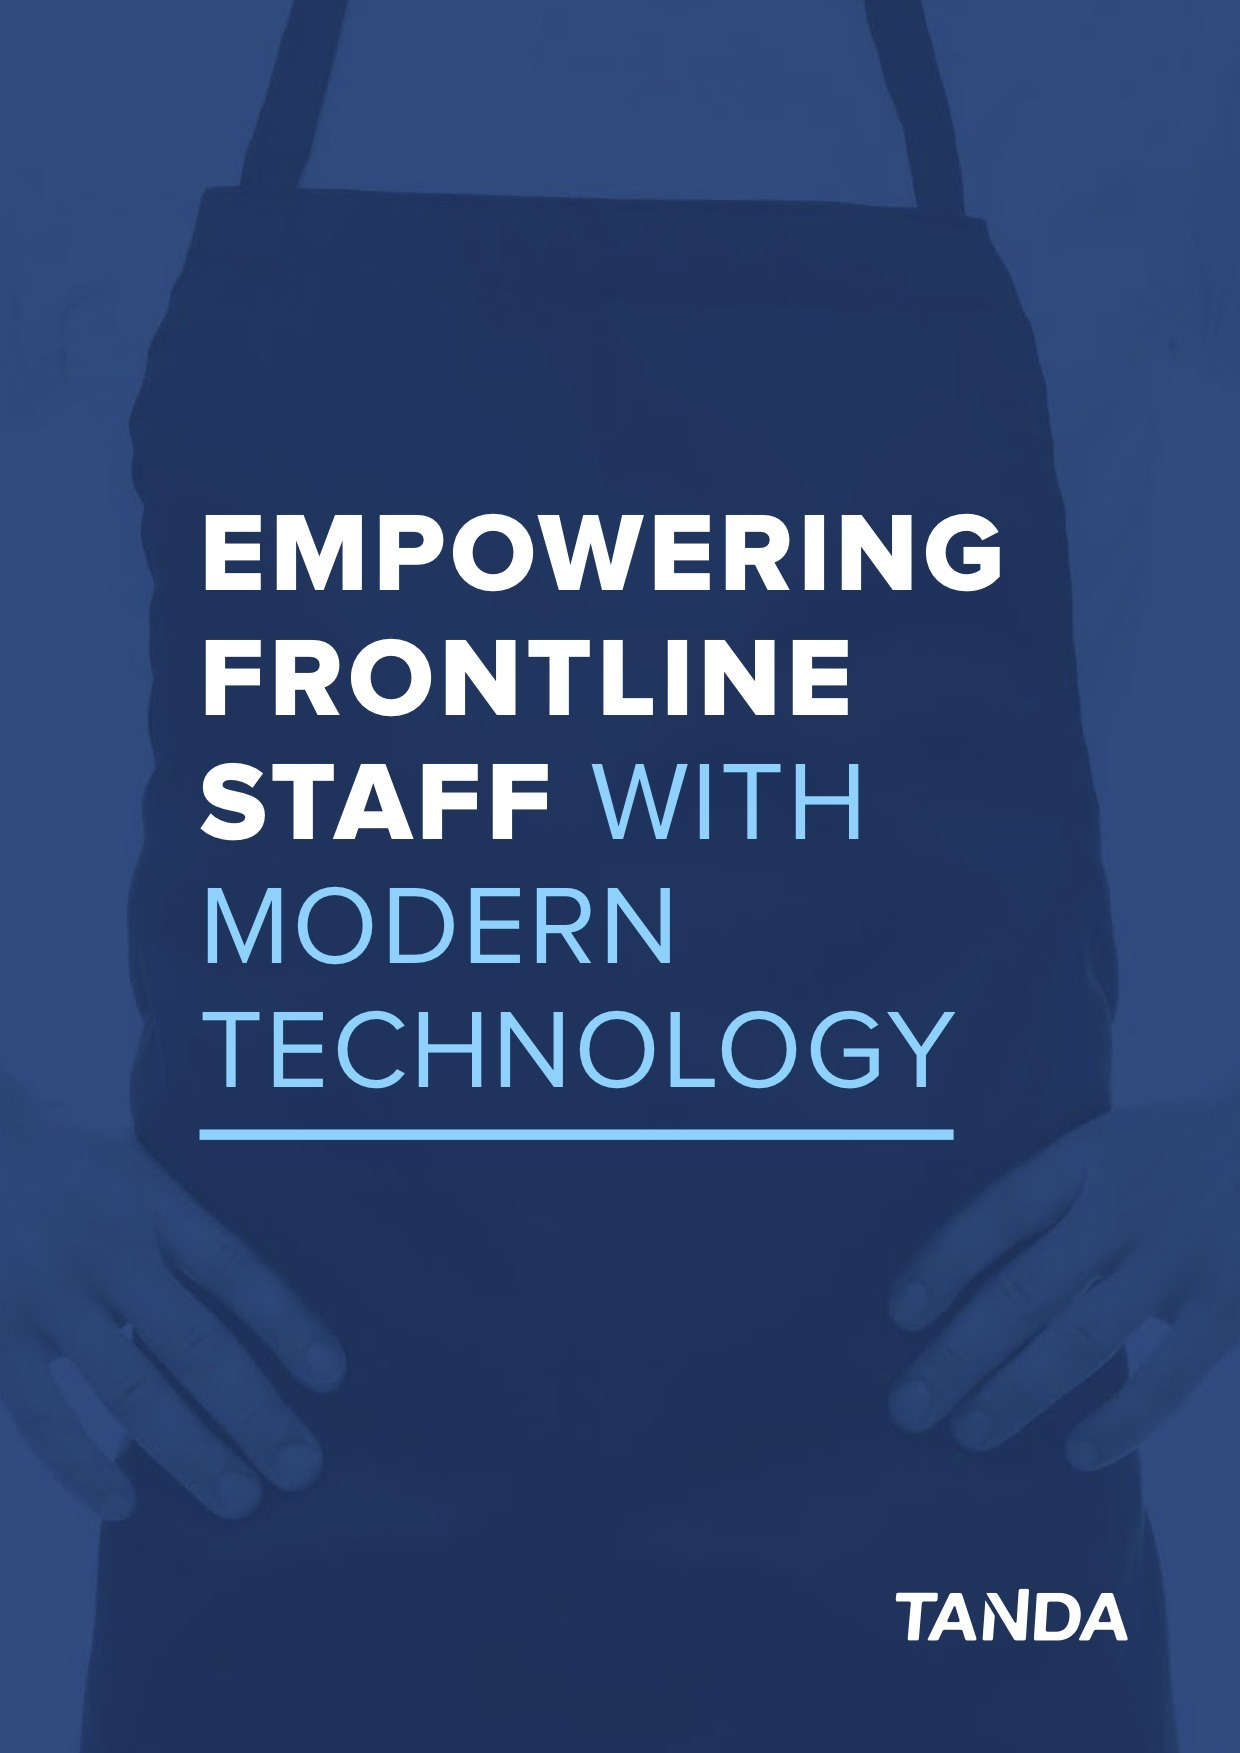 Empowering Frontline Staff with Modern Technology